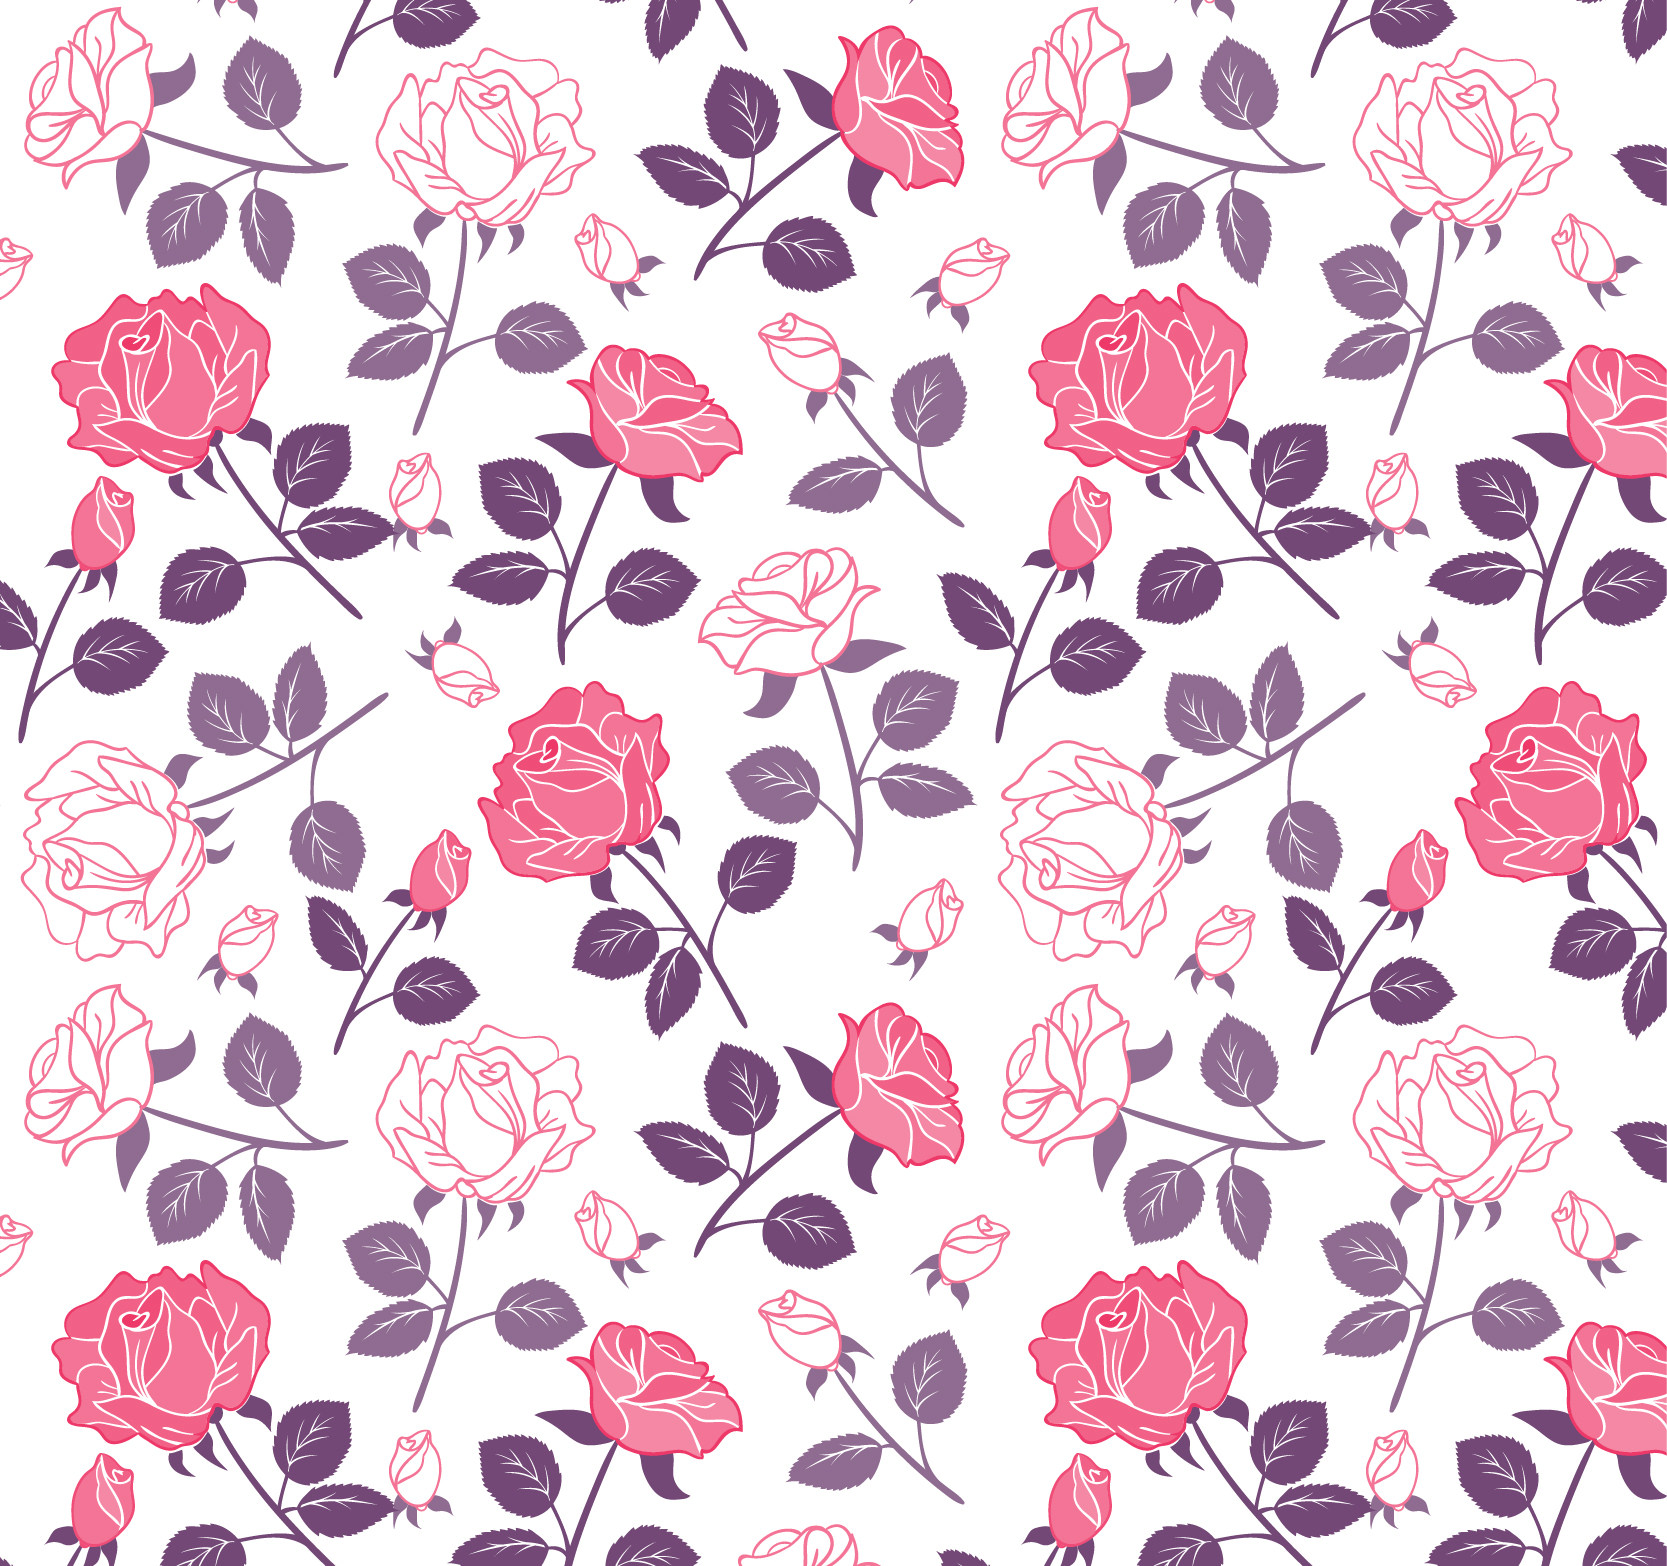 Free vector Rose Flowers Pattern in Pink and Purple Tones